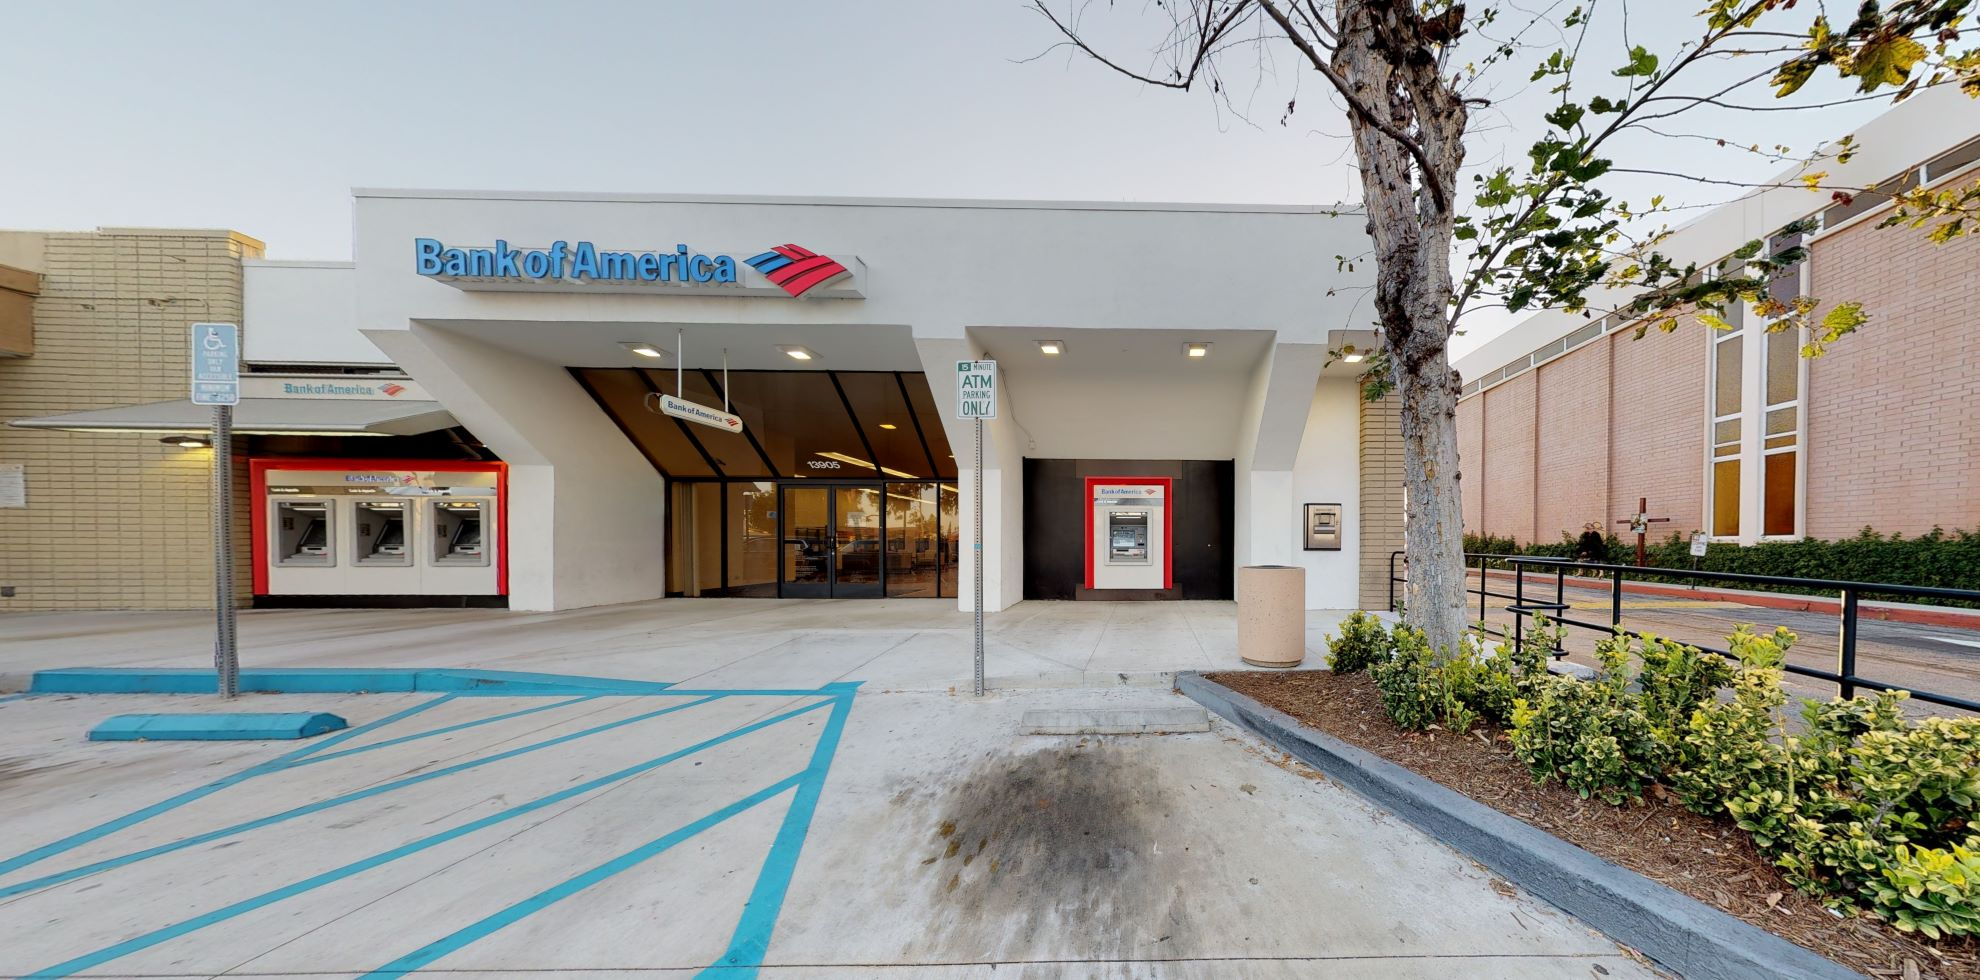 Bank of America financial center with walk-up ATM | 13905 Pioneer Blvd, Norwalk, CA 90650